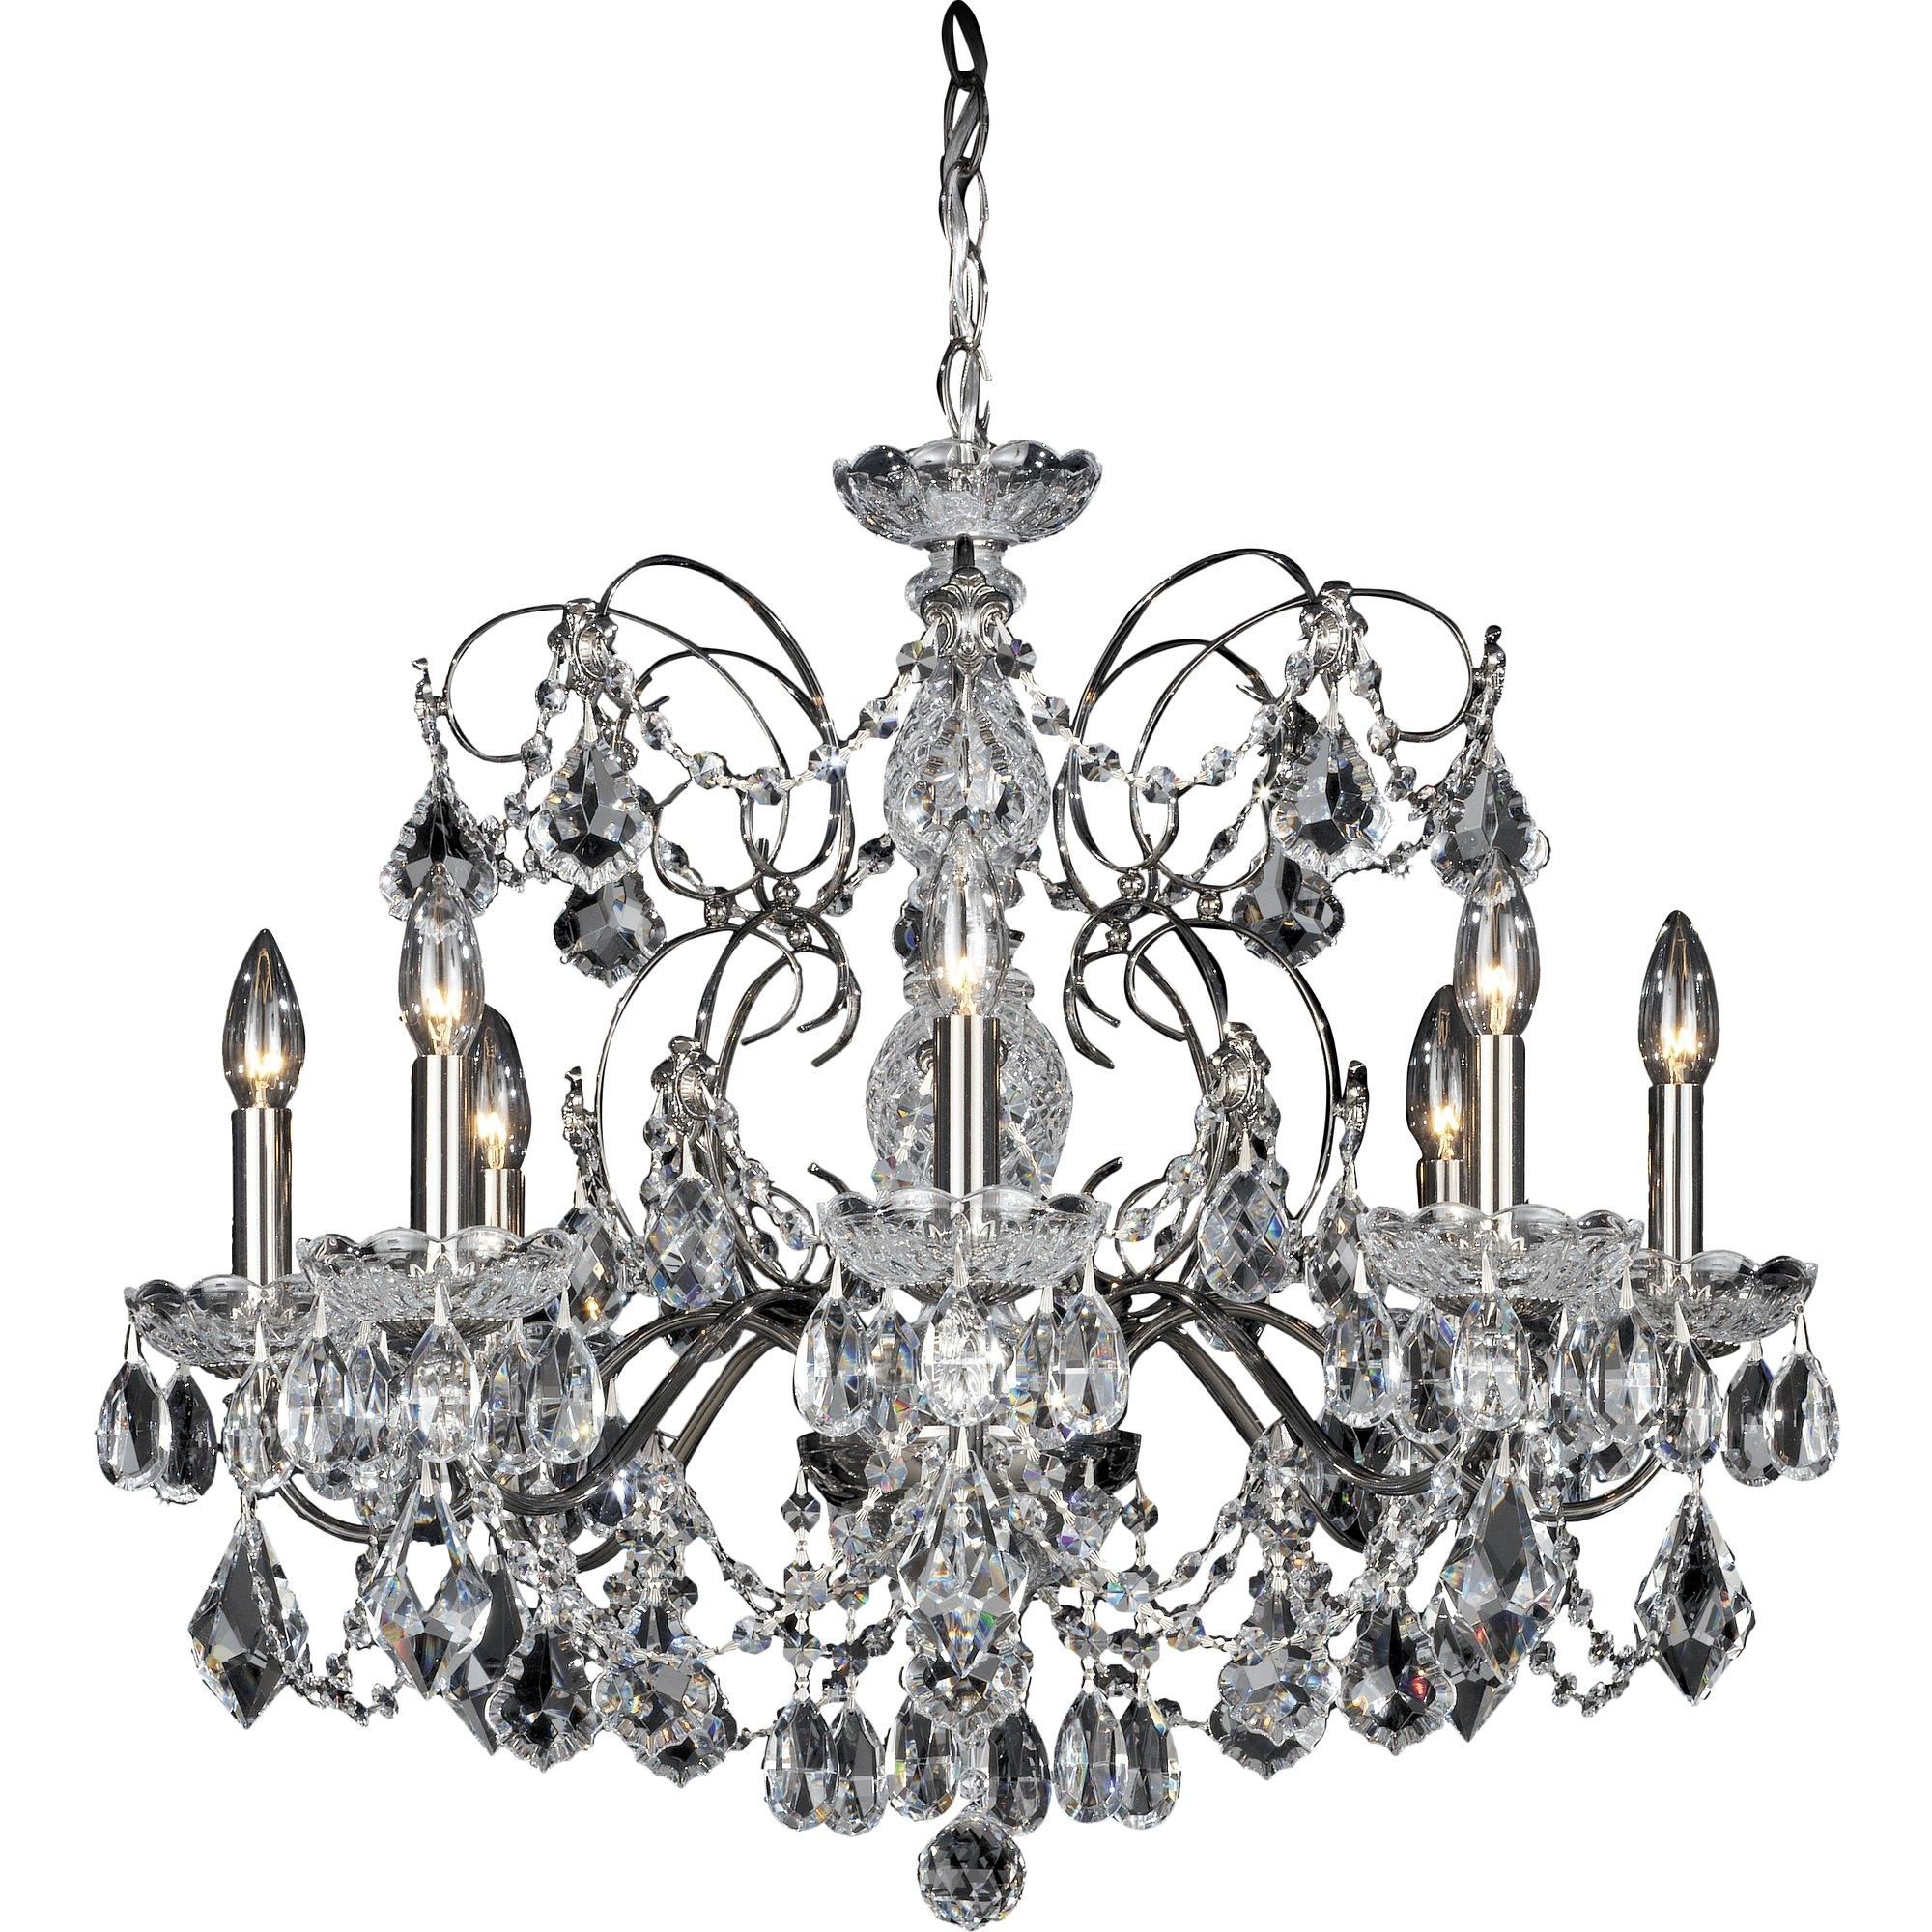 French Gold Chandeliers Youll Love Wayfair For French Gold Chandelier (Image 7 of 14)